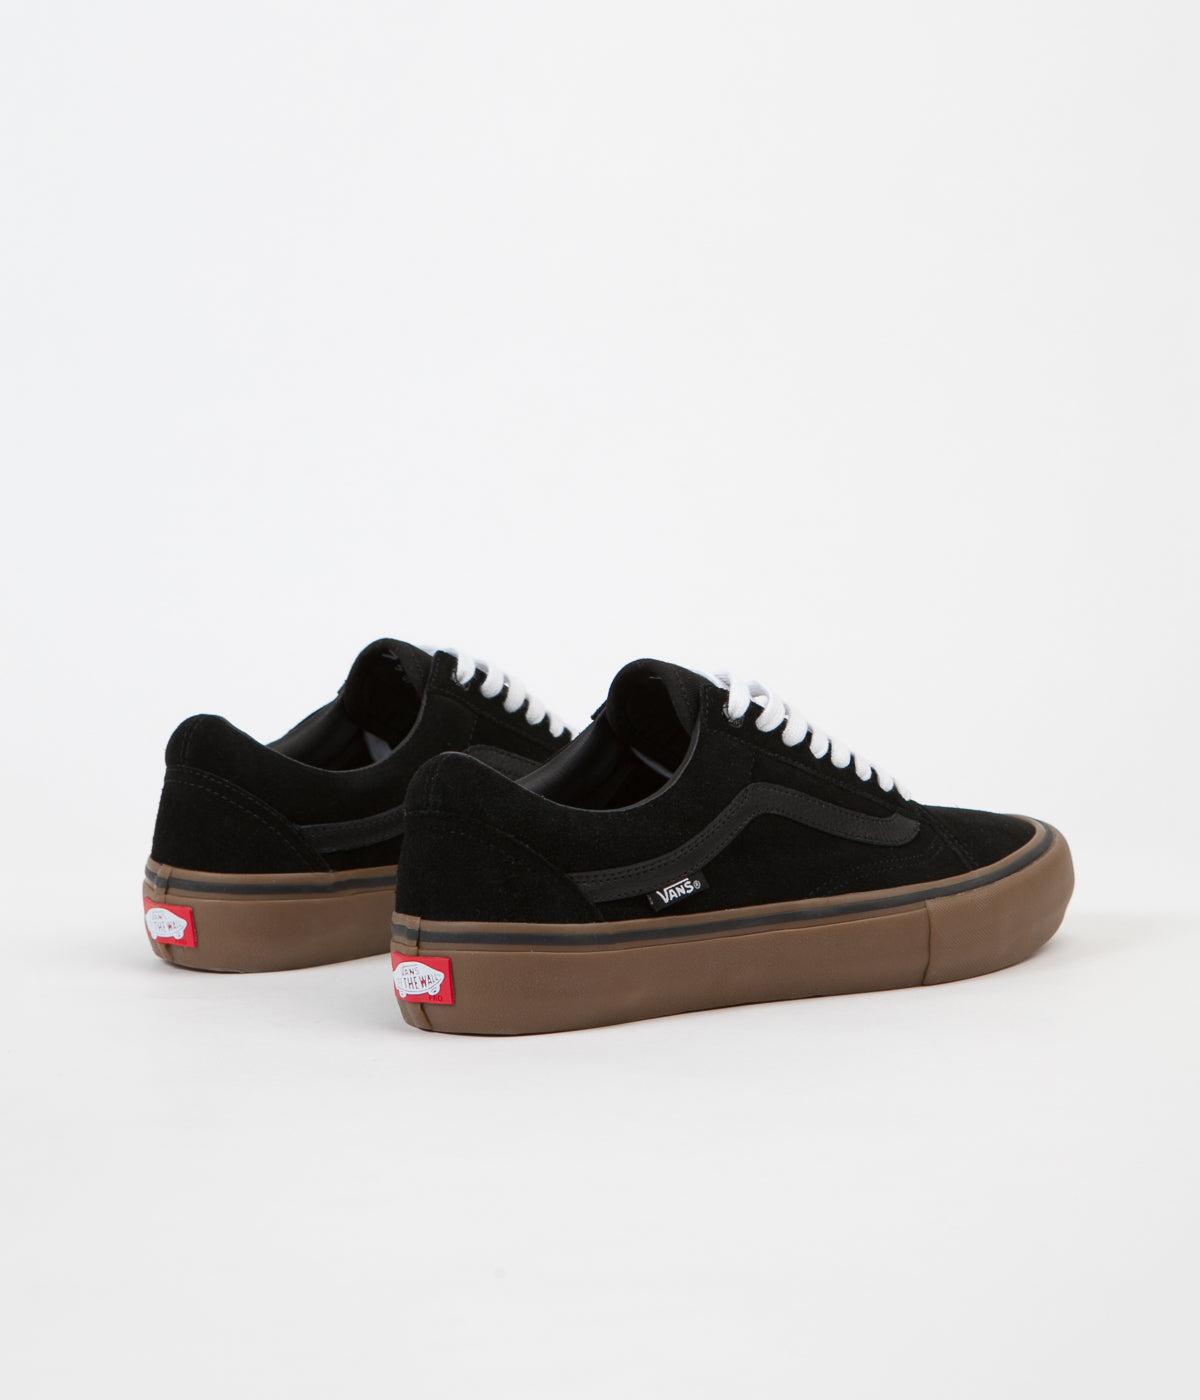 vans old skool pro shoes black gum gum flatspot. Black Bedroom Furniture Sets. Home Design Ideas